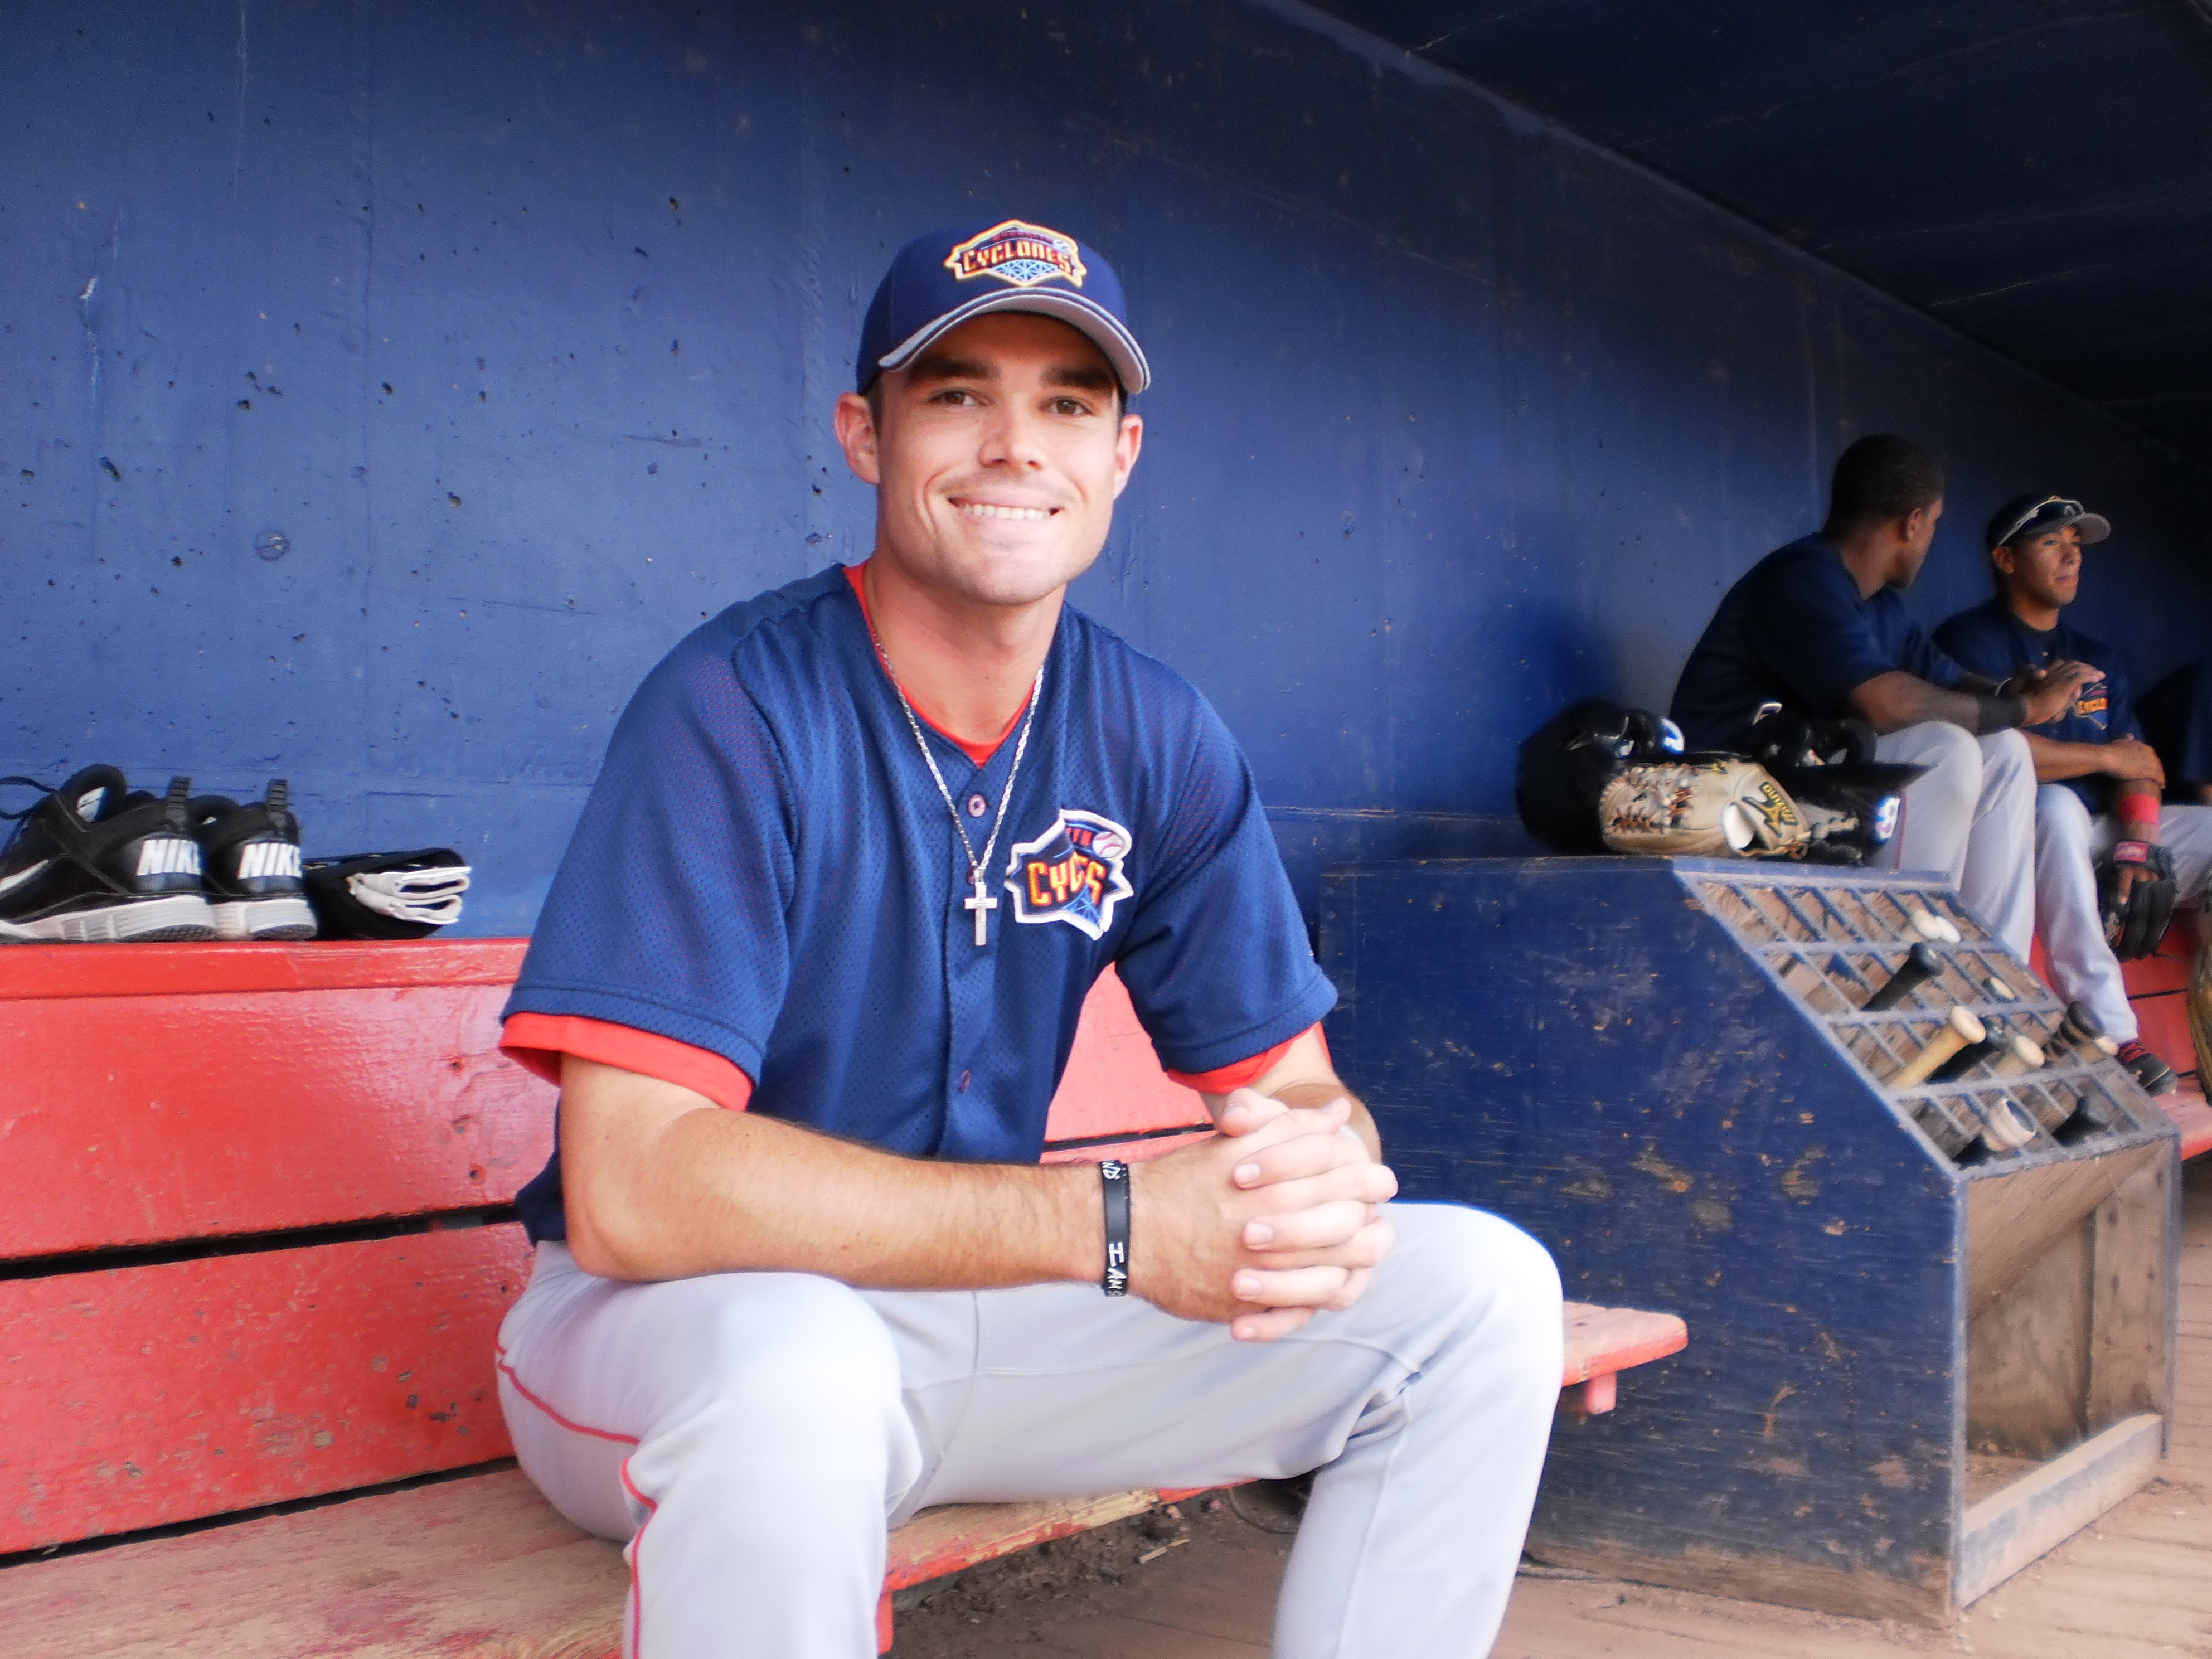 Mets Lower Minors: Verrett Solid, Cecchini Scores Twice In Clones Debut, Boyd Collects Four RBIs